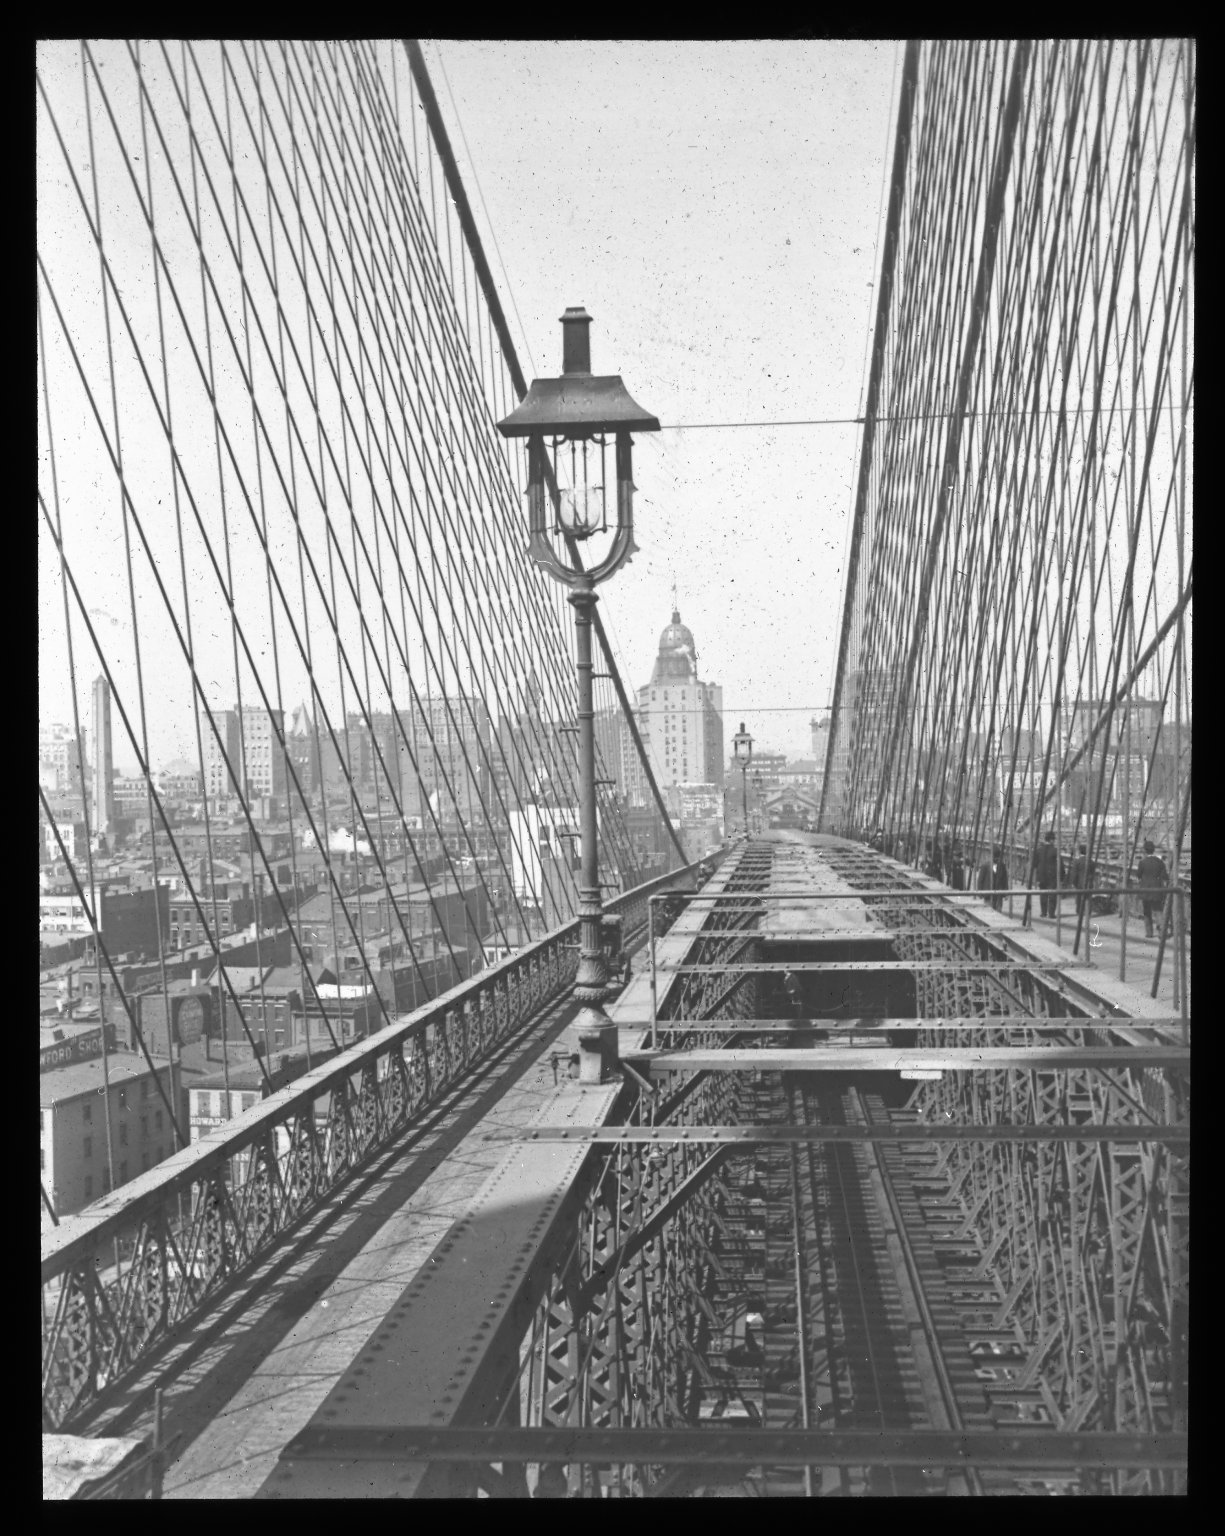 Looking to New York from Brooklyn Tower. Collection- Lantern Slide Collection Views- U.S., Brooklyn Brooklyn Bridge 1896-1900